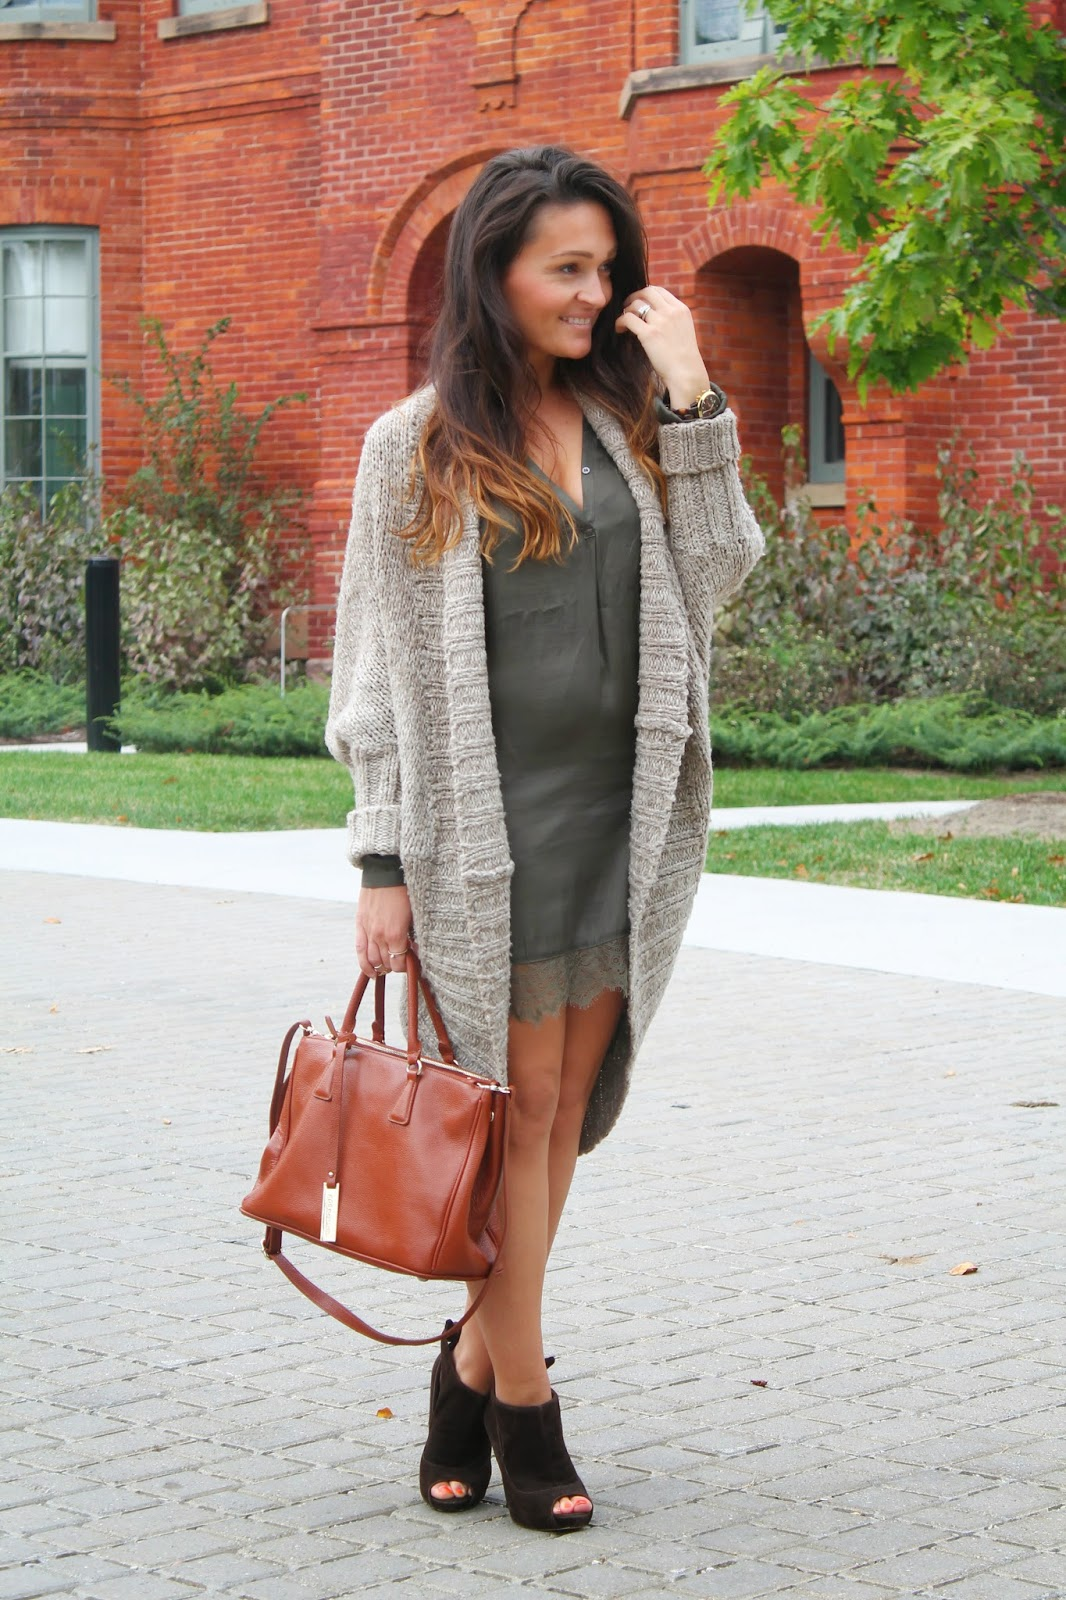 uk fashion blogger, Fall outfit, silk dress, oversized sweater, olive green dress, toronto street style, blogerke, jesenja moda, canadian fashion blogger